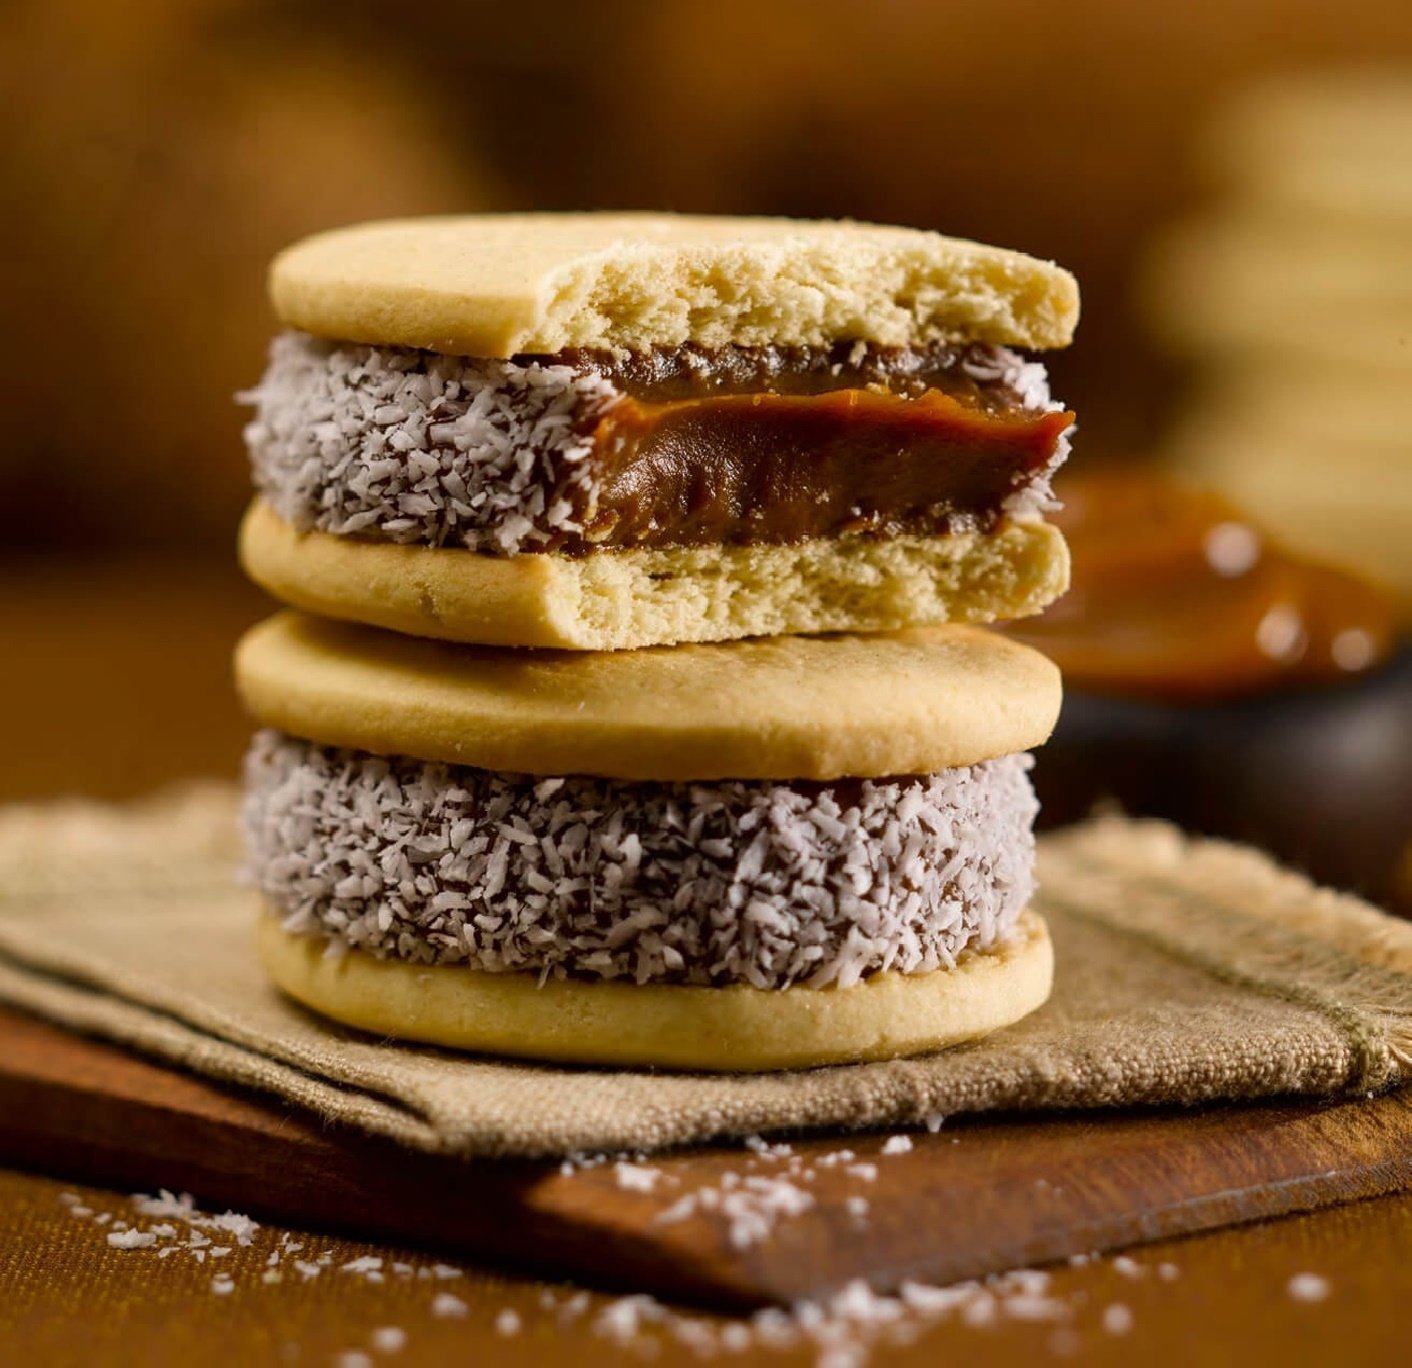 Amazon.com: Cachafaz Alfajor Maizena - Cornstarch Sandwich Cookie filled with dulce de leche decorated with shredded coconut. 6 Units: 76 G